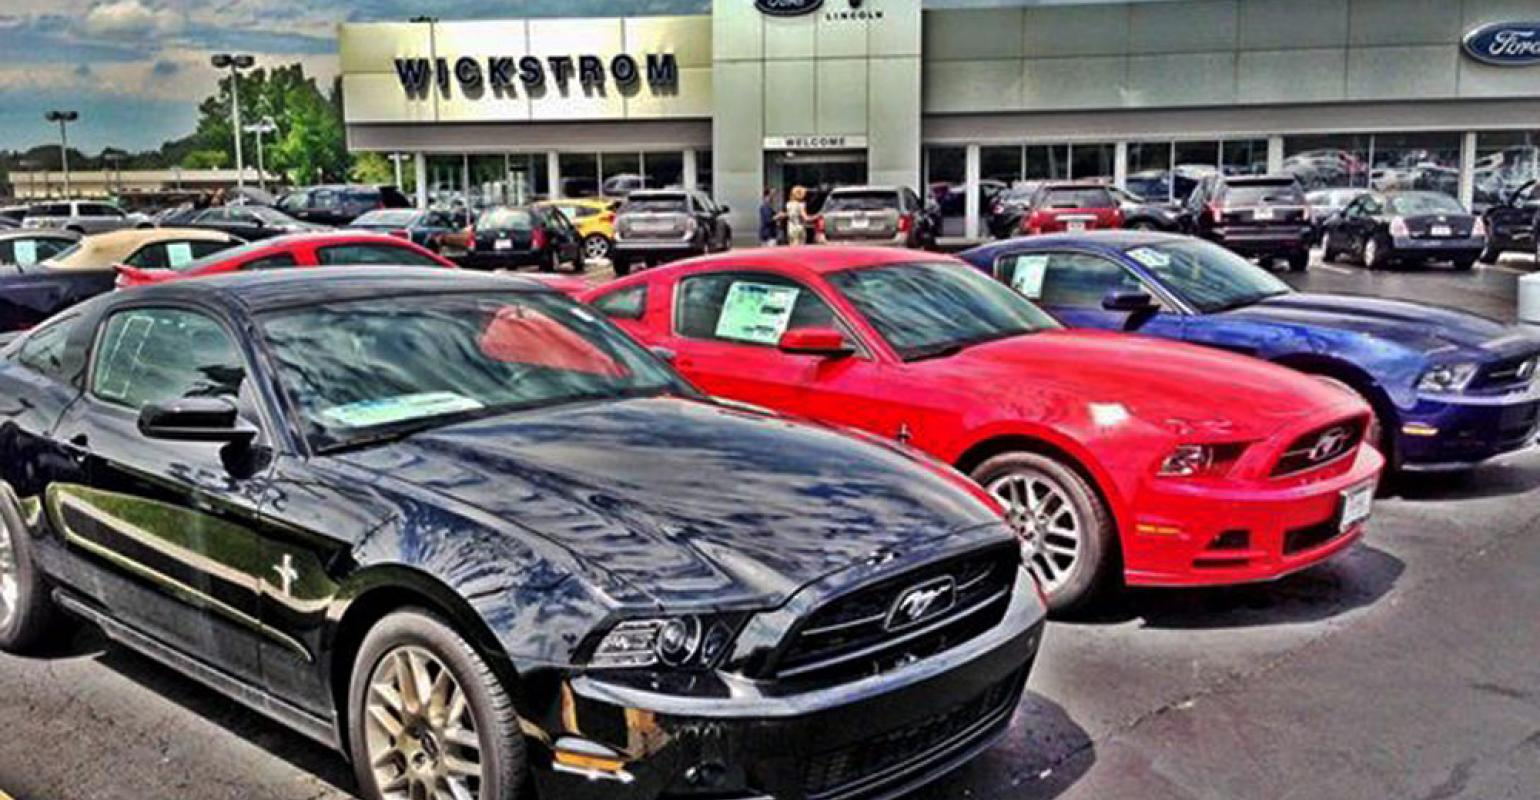 Car Dealerships In Chicago >> Chicago Area Car Dealers Warned Of Key Swap Scam Wardsauto